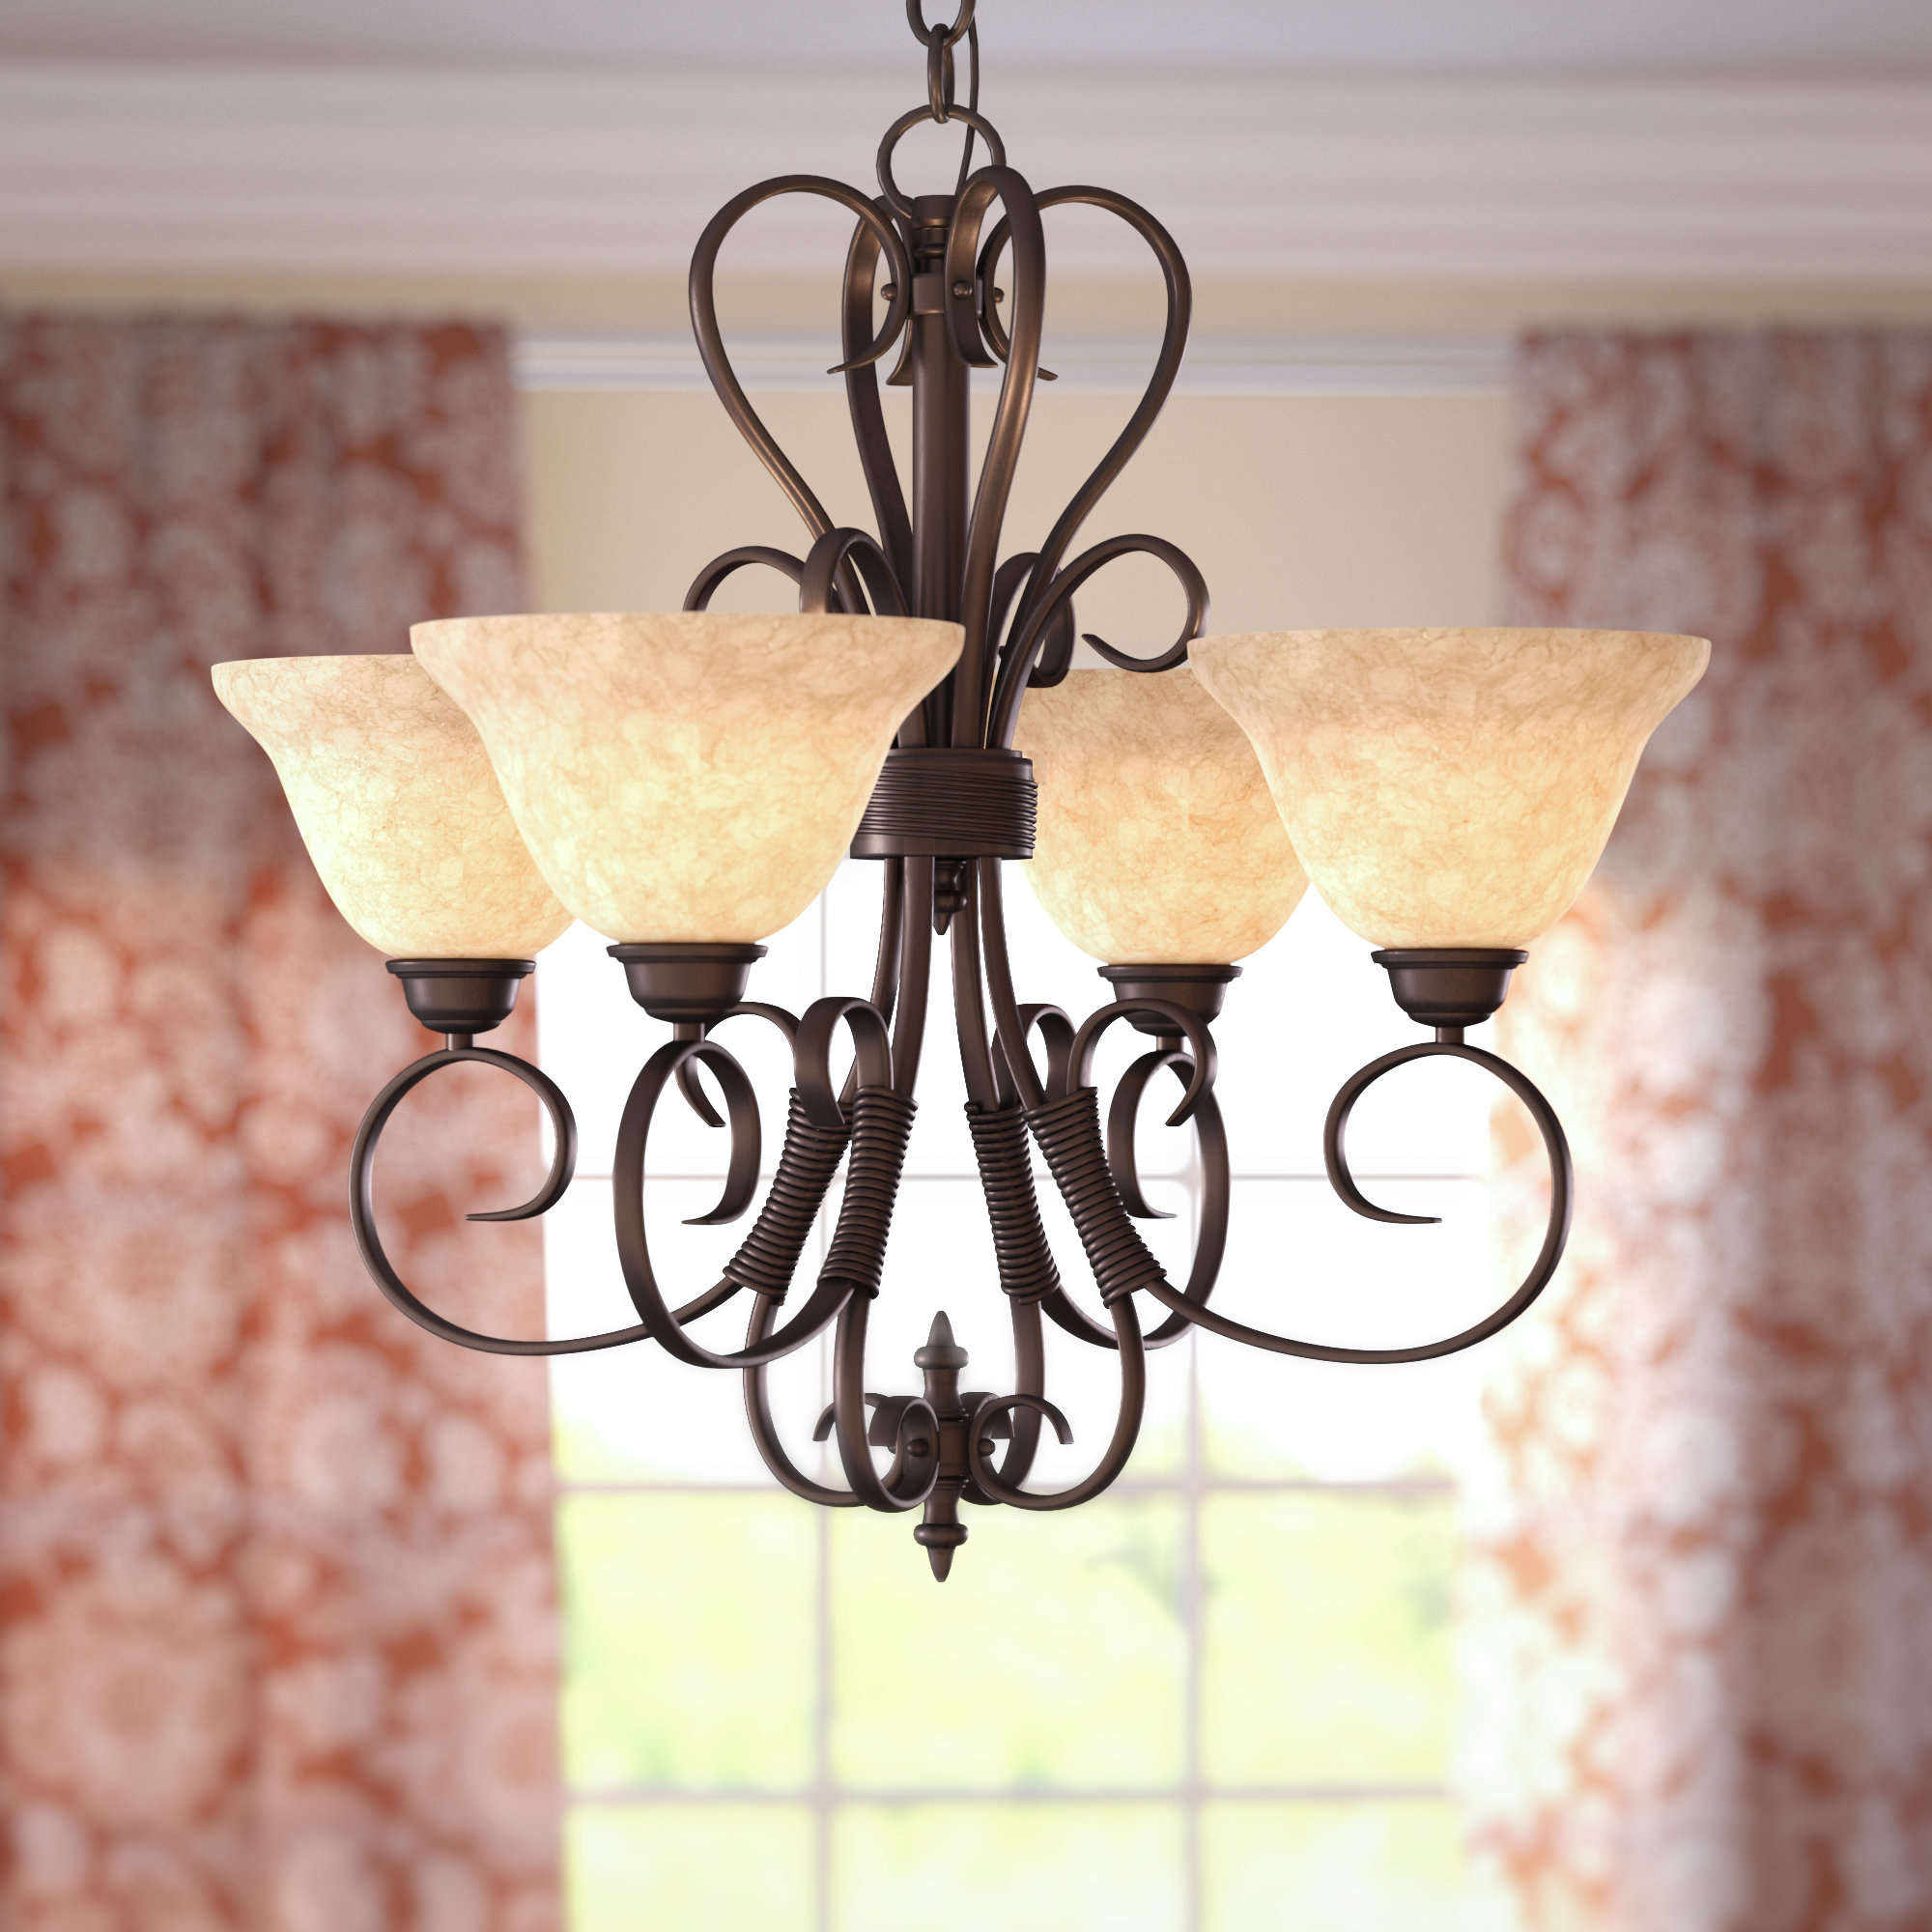 Favorite Gaines 4 Light Shaded Chandelier Pertaining To Gaines 5 Light Shaded Chandeliers (View 6 of 25)